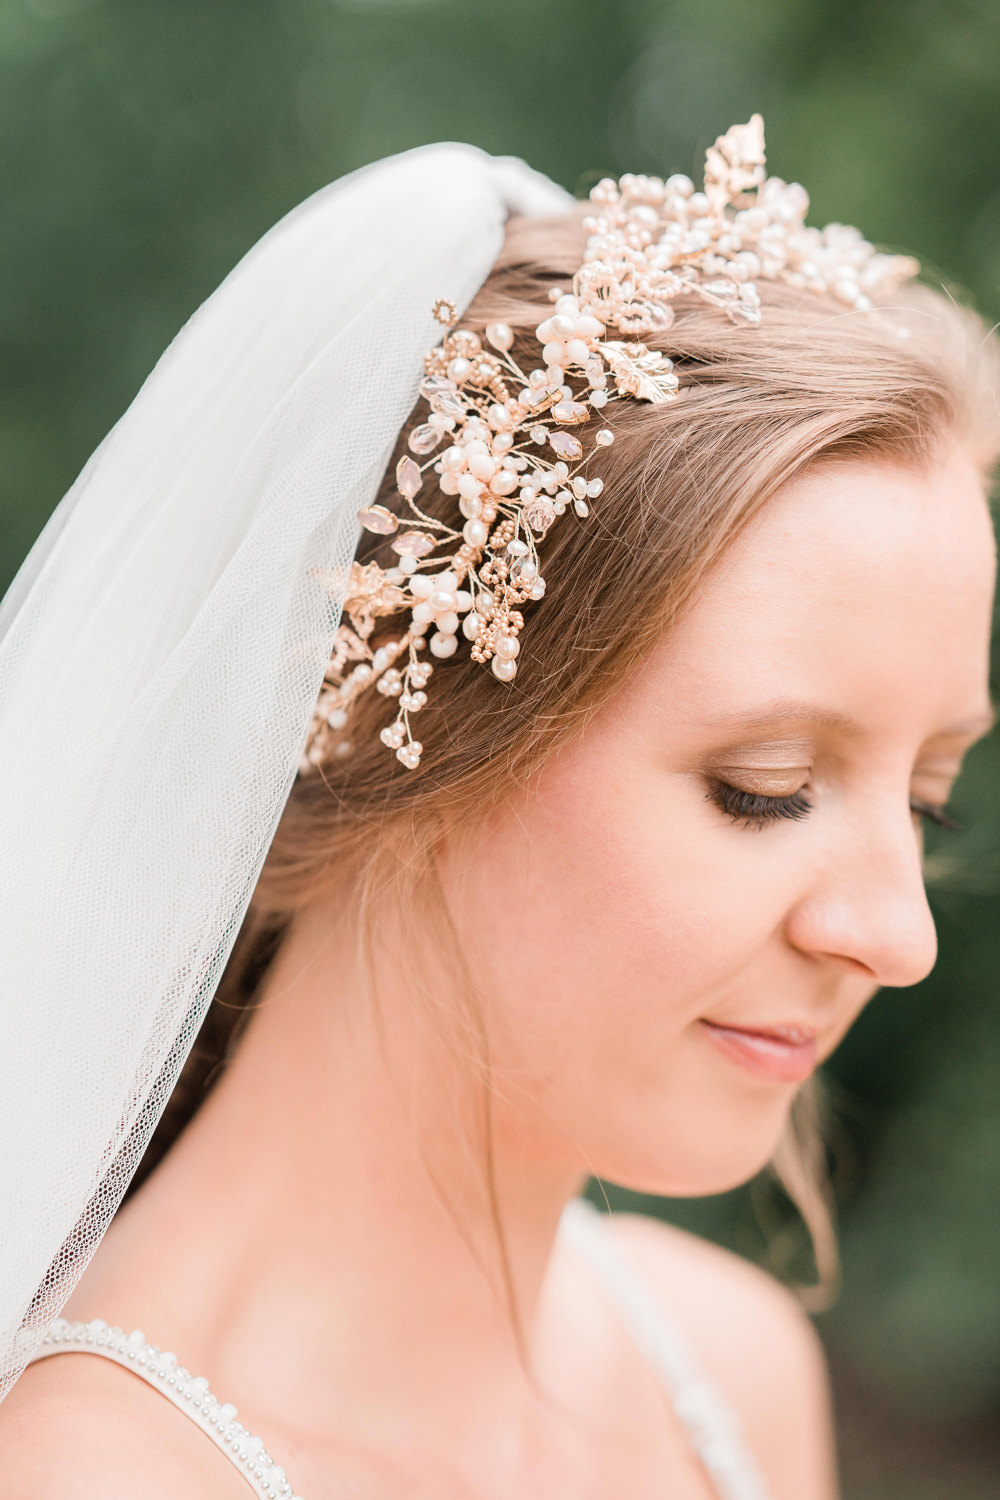 Bride Bridal Hair Up Do Accessory Veil Copper Golden Autumnal Wedding Ideas Joanna Briggs Photography